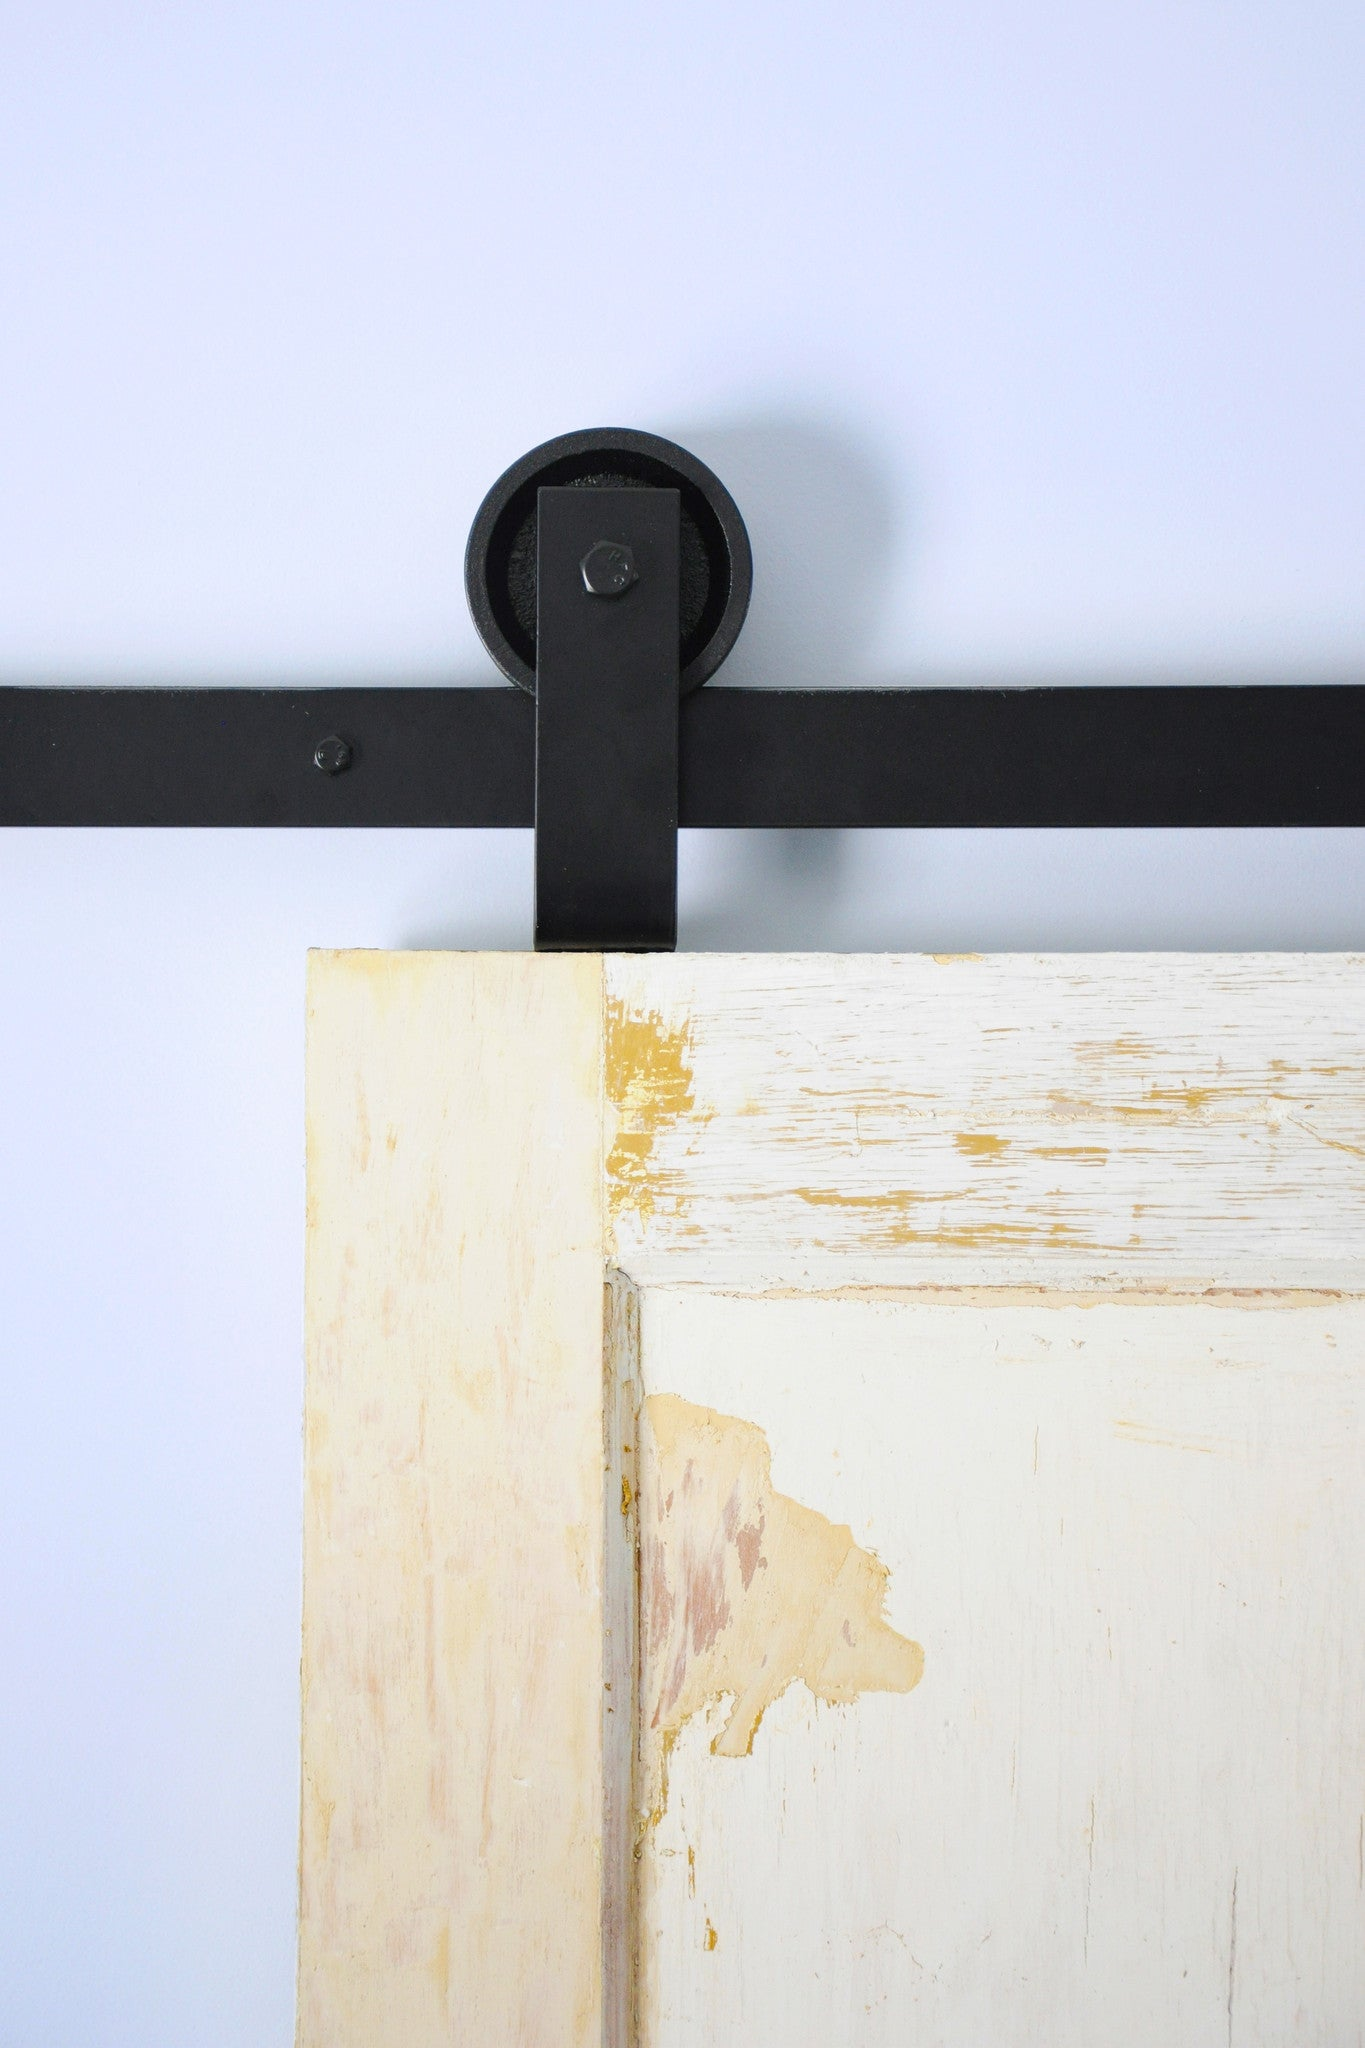 Top Mount double barn door kit